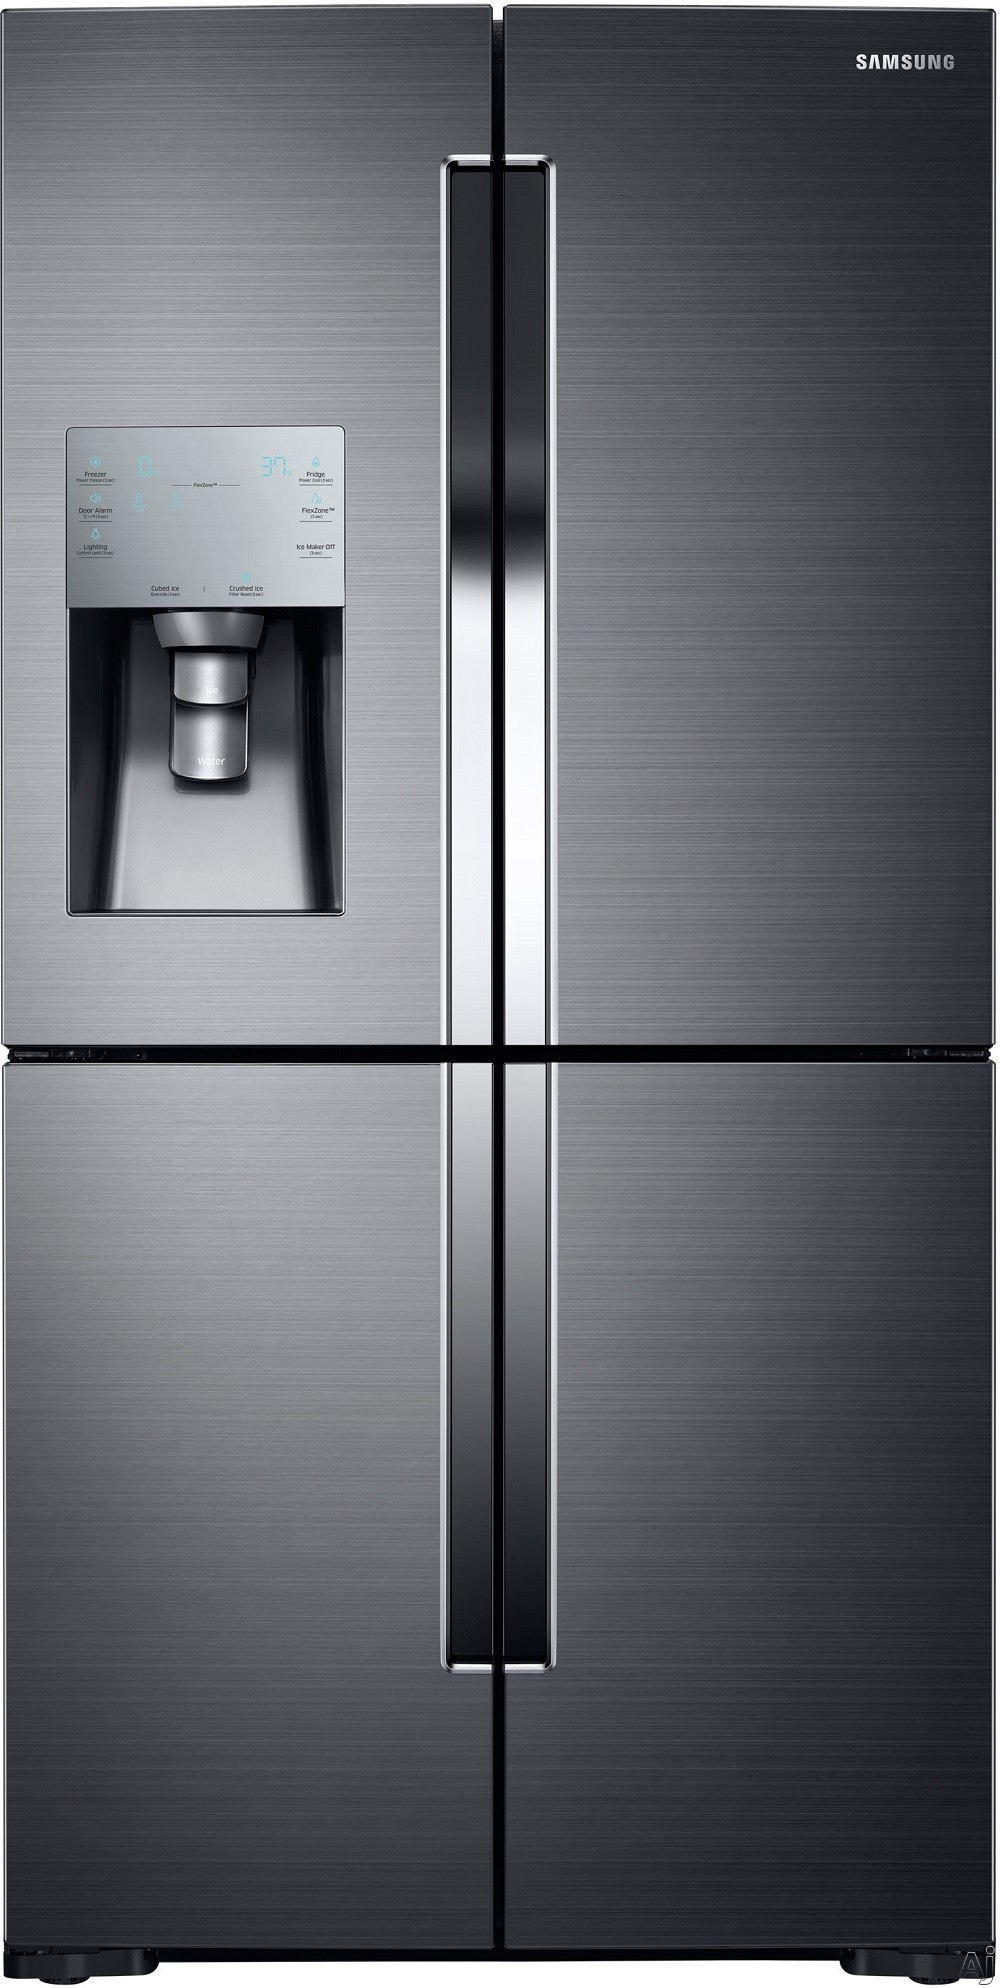 Samsung RF28K9070 36 Inch 4-Door French Door Refrigerator with 28.1 cu. ft. Total Capacity, 4-Temperature FlexZone Compartment, 4 Glass Shelves, Triple Cooling System, Ice Master Ice Maker, External Water/Ice Dispenser and Energy Star Rated